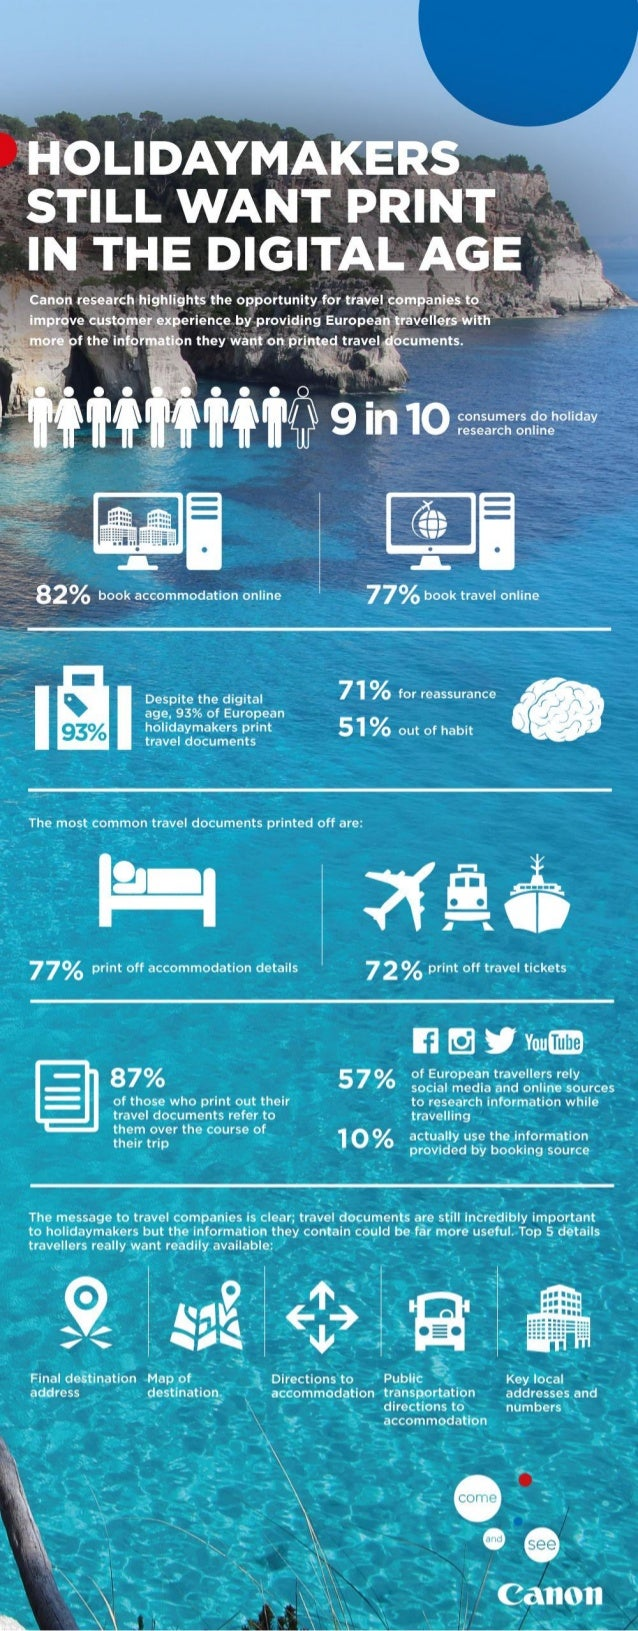 Canon research highlights the opportunity for travel companies to improve customer experience by providing European travel...